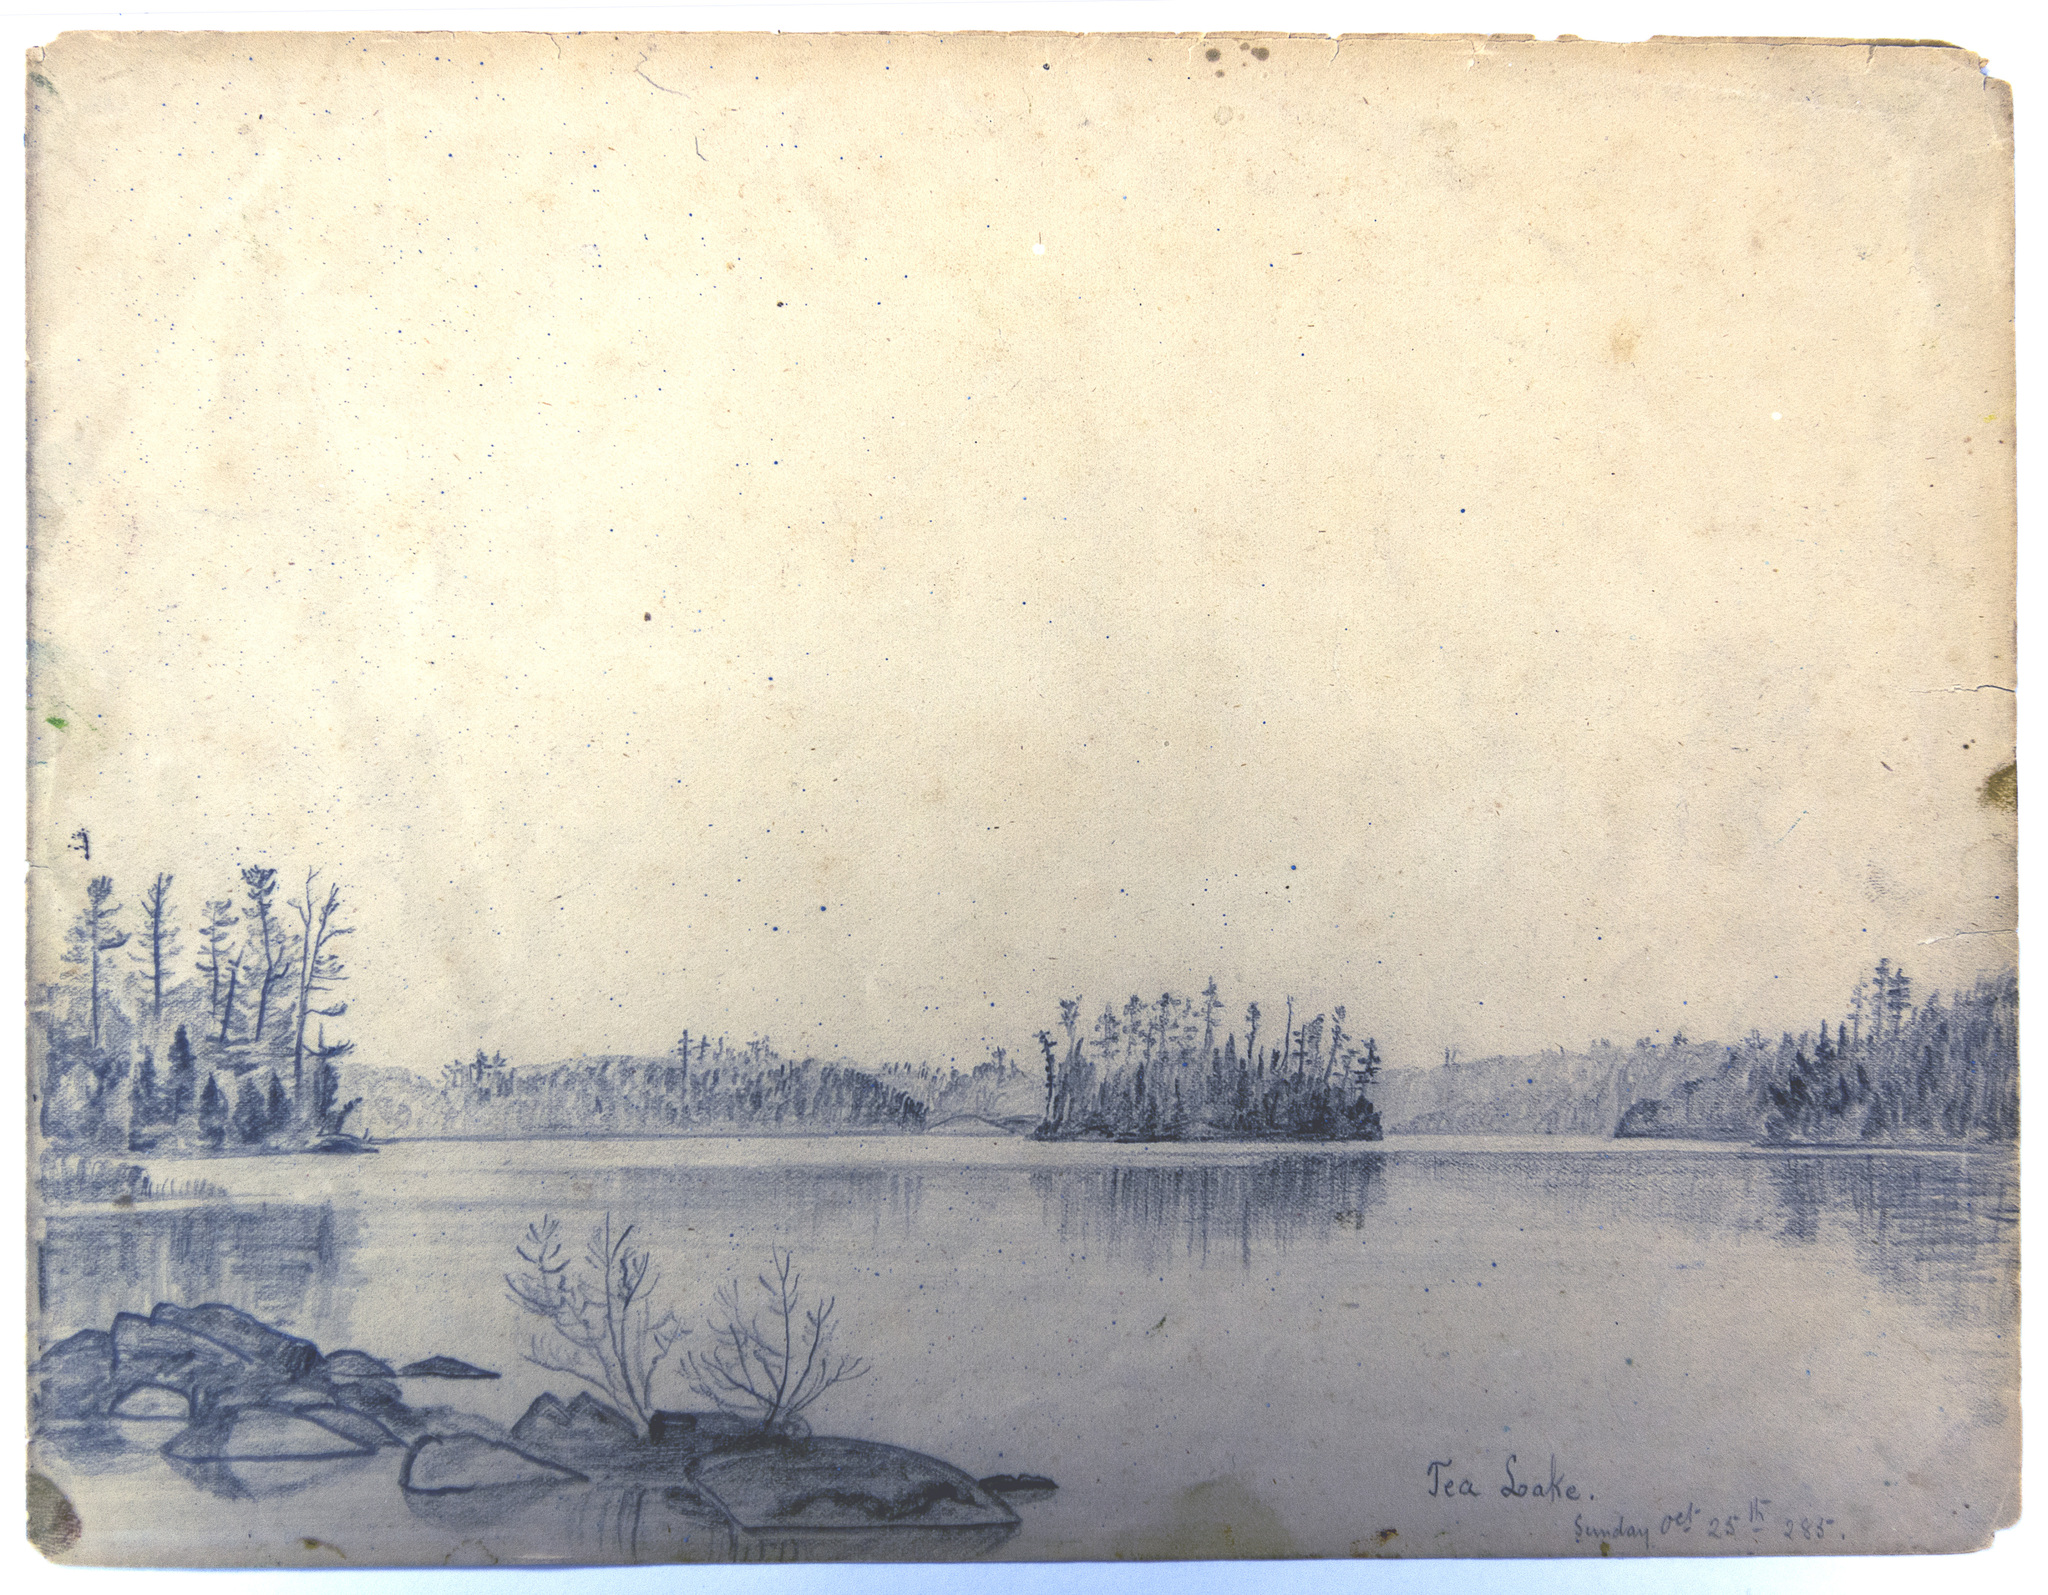 Black-and-white pencil drawing of lake surrounded by trees.